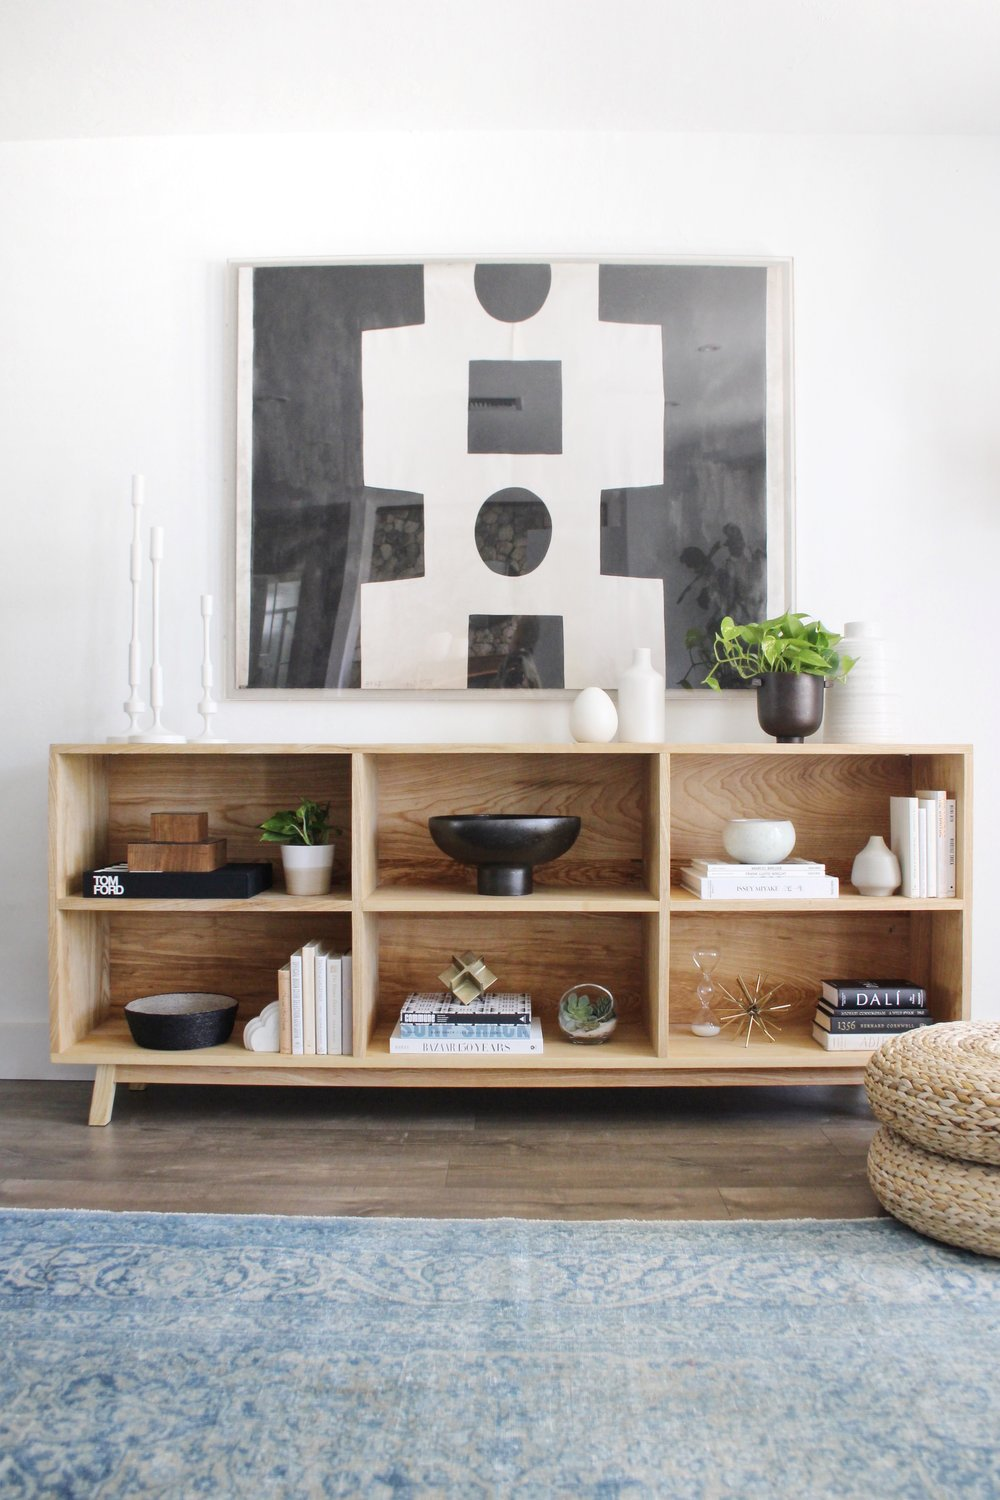 open shelving console with large artwork - #projectmidcenturymuse - the habitat collective interior design